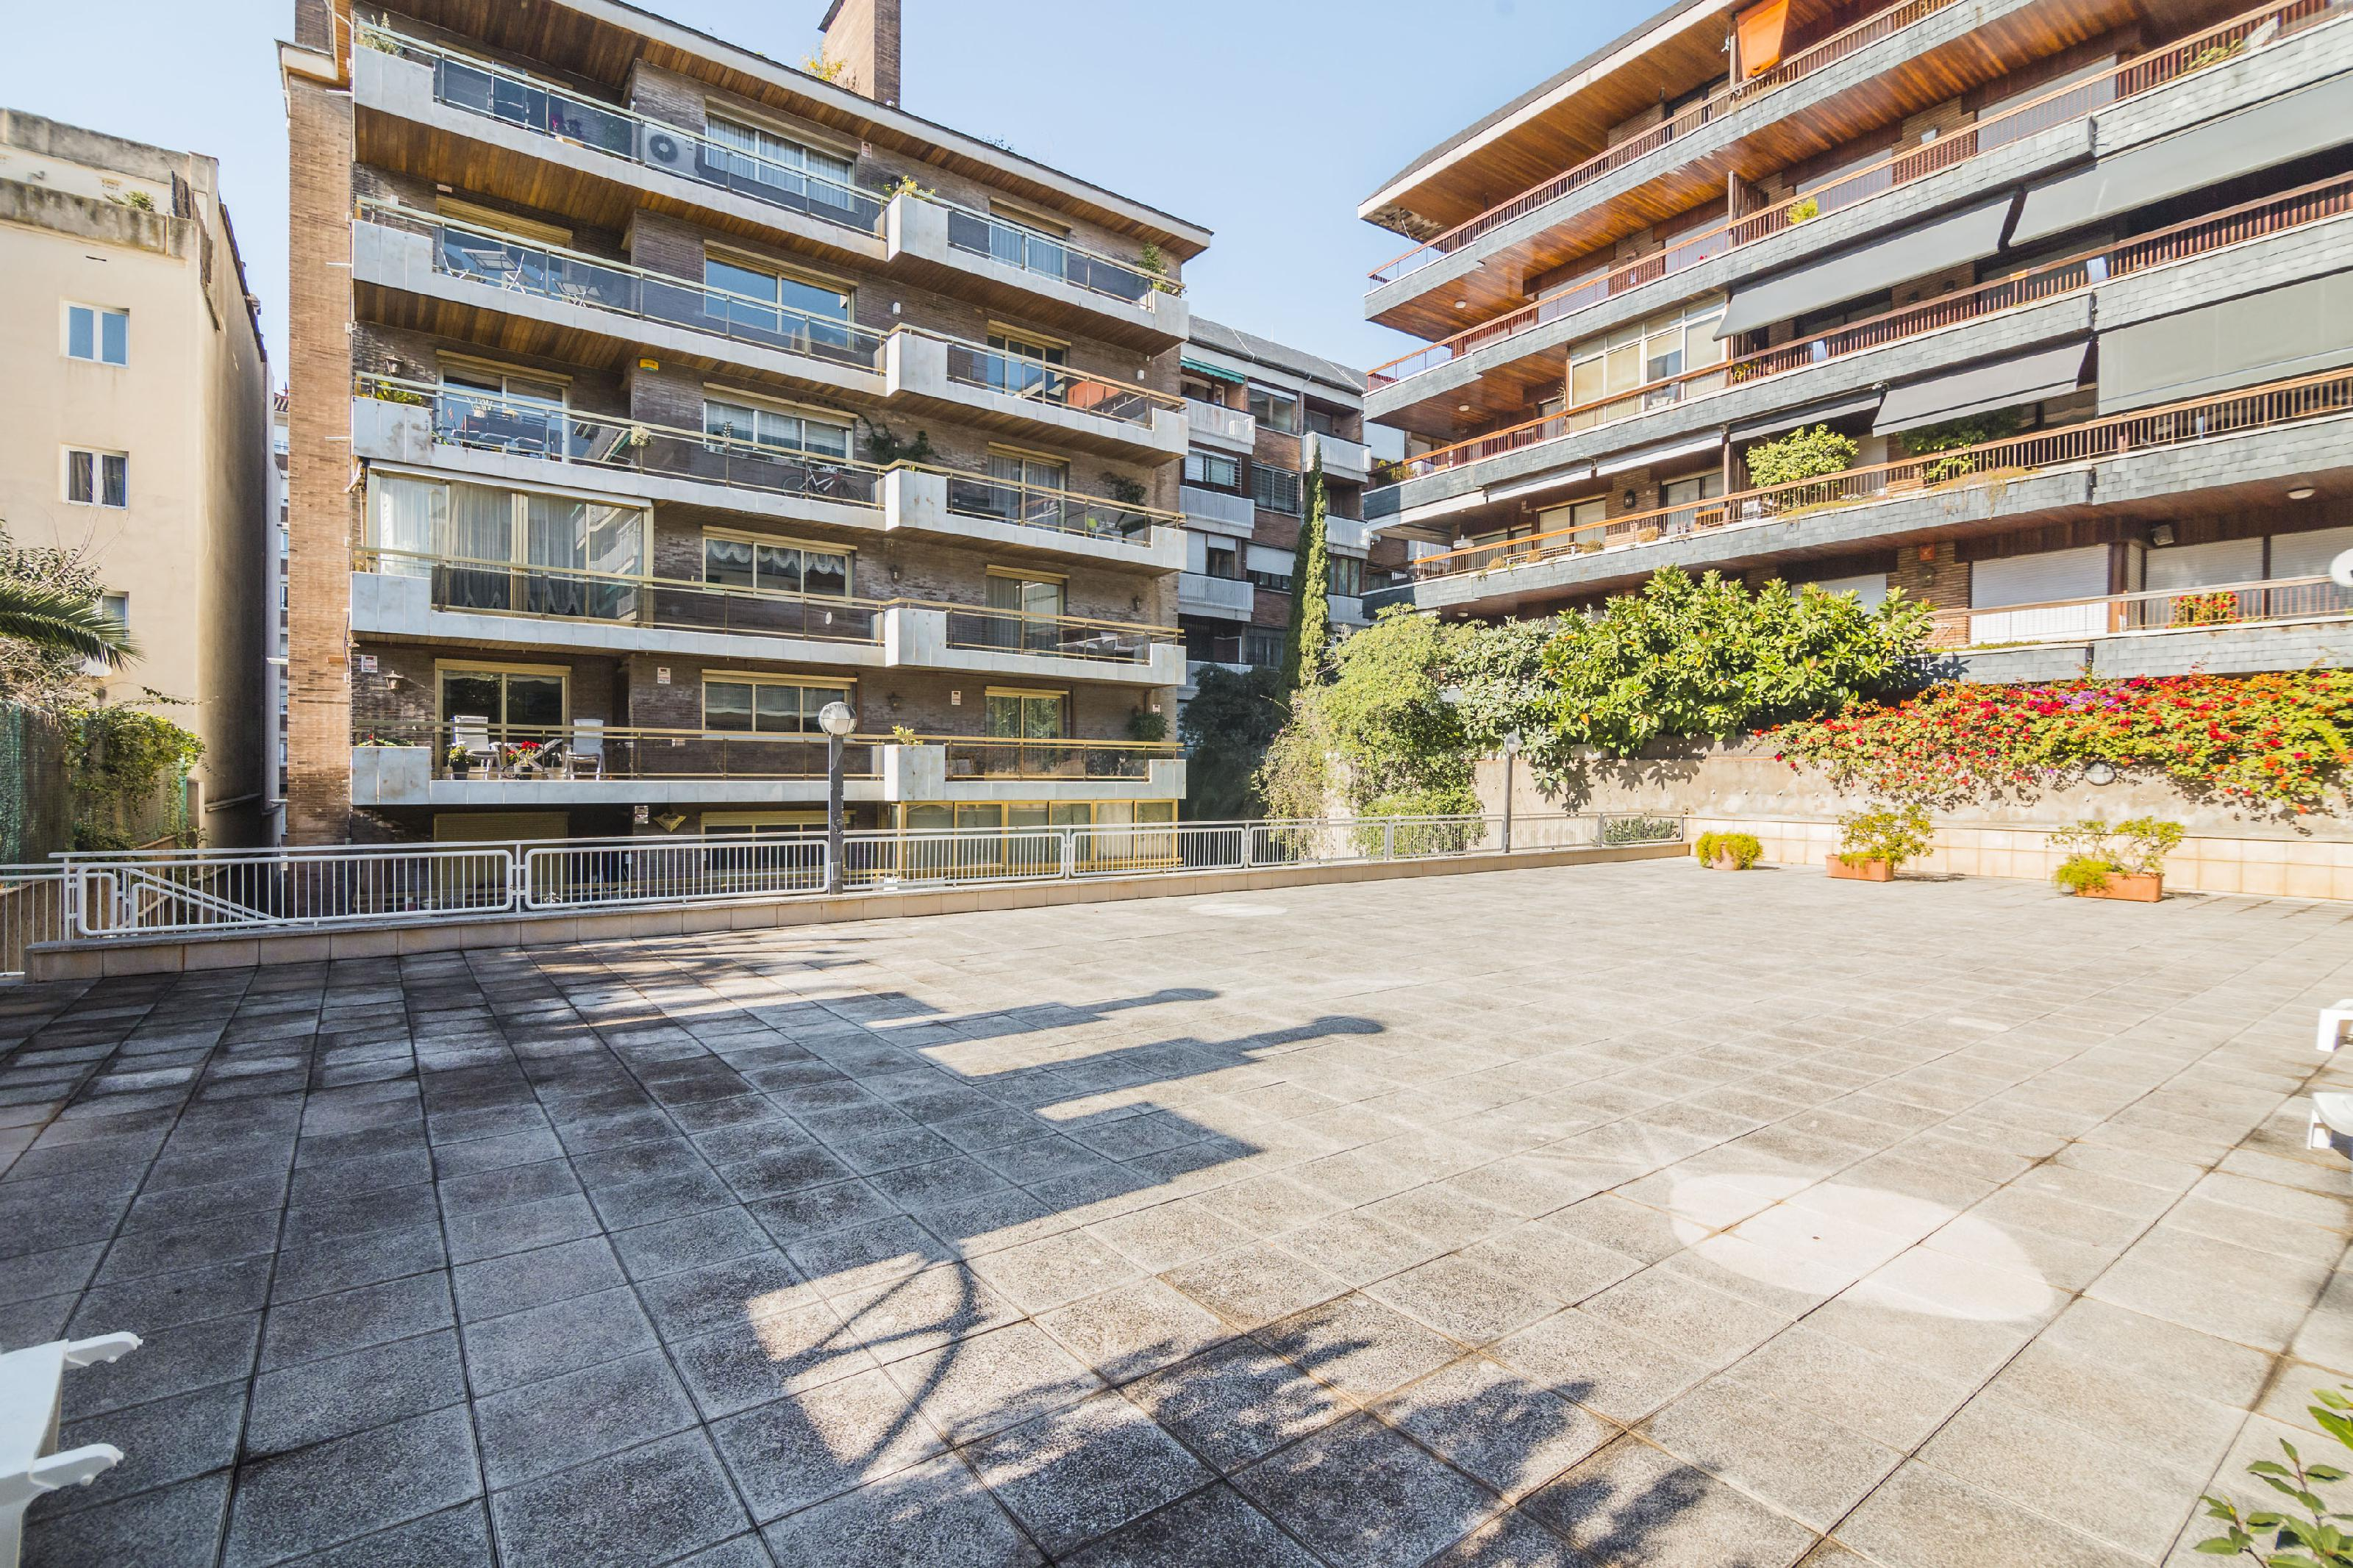 221811 Apartment for sale in Sarrià-Sant Gervasi, Tres Torres 17